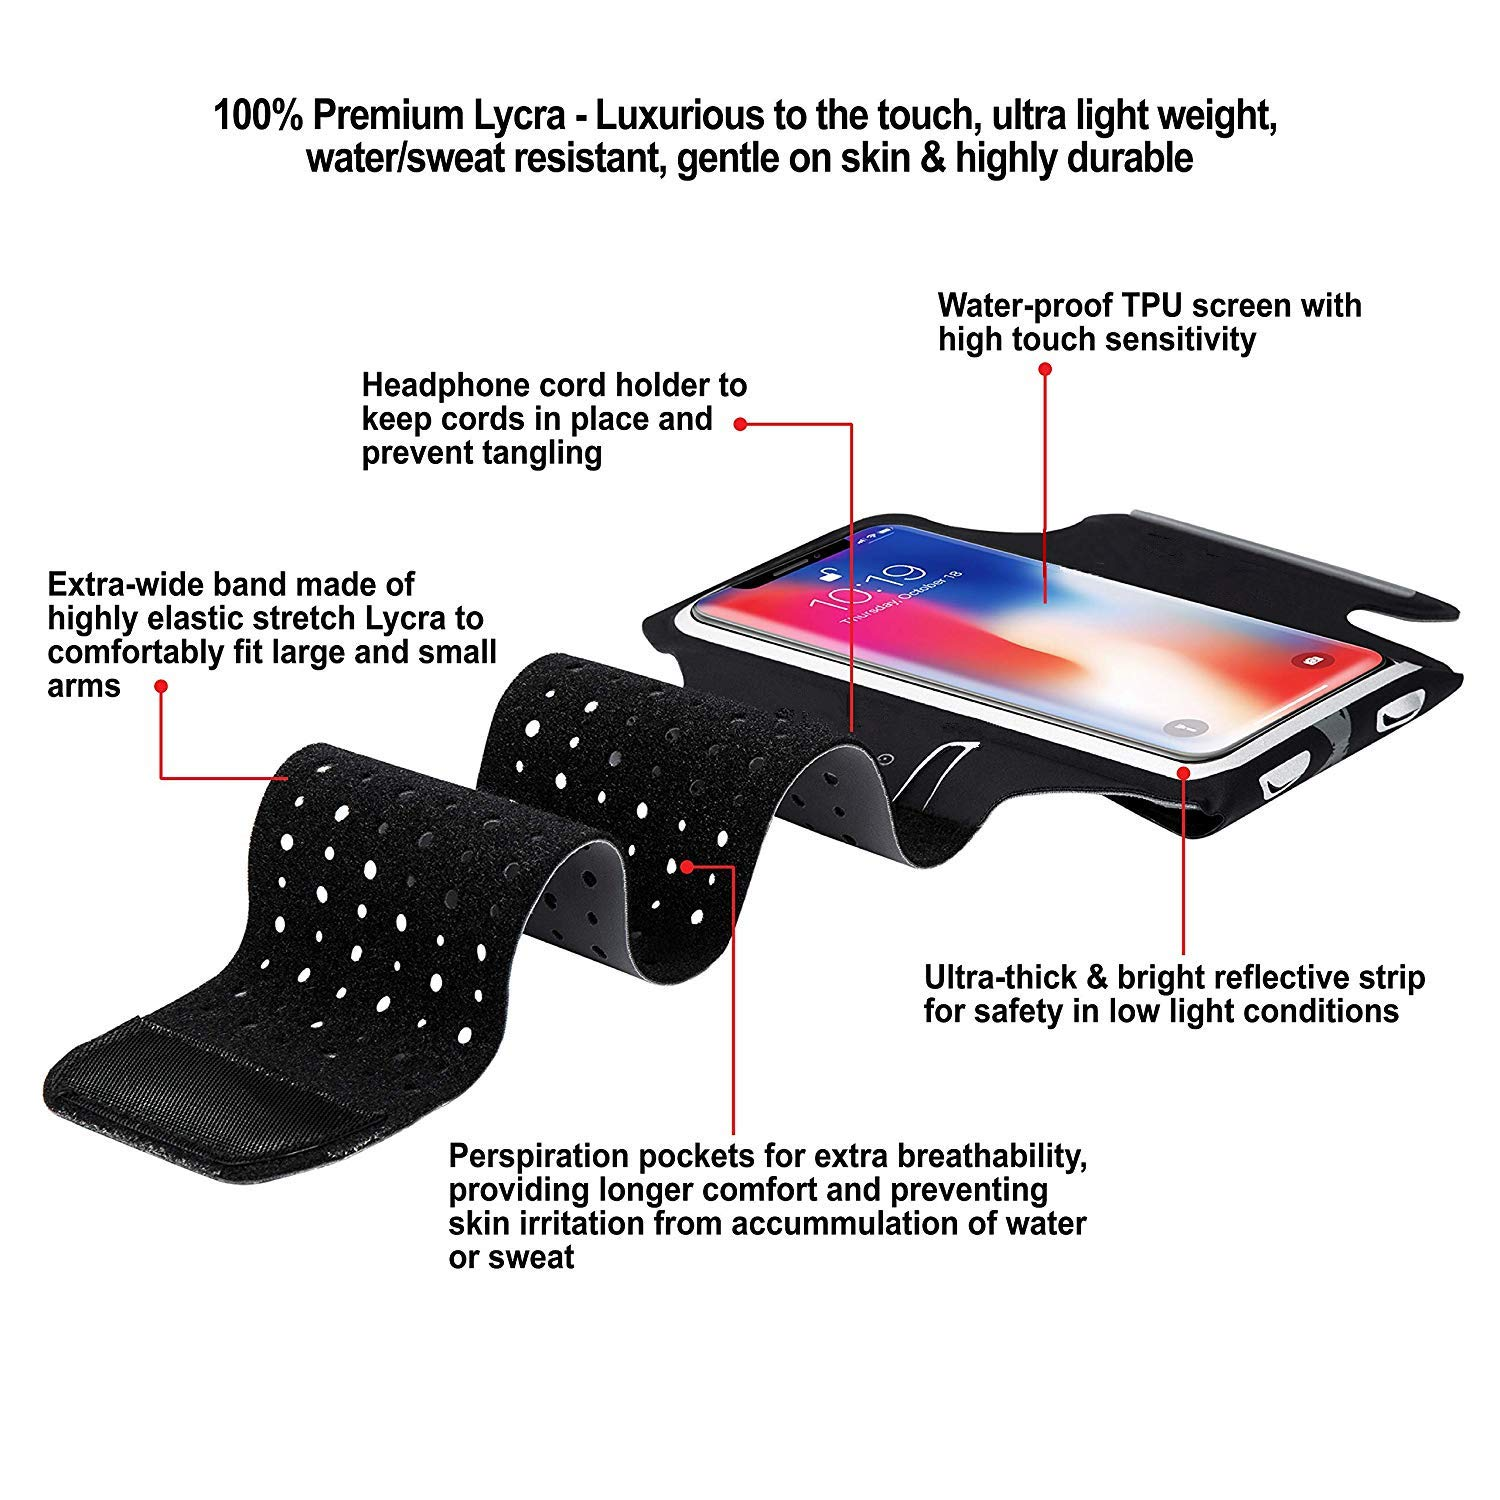 WJZXTEK Running Armband & Phone Holder for iPhone X, Xs, Xs Max, Xr, 8, 7, 6, Plus Sizes, Galaxy S9, S8, S7, S9/S8 Plus, Note with Adjustable Elastic Band & Key/Card Slot - 100% Lycra